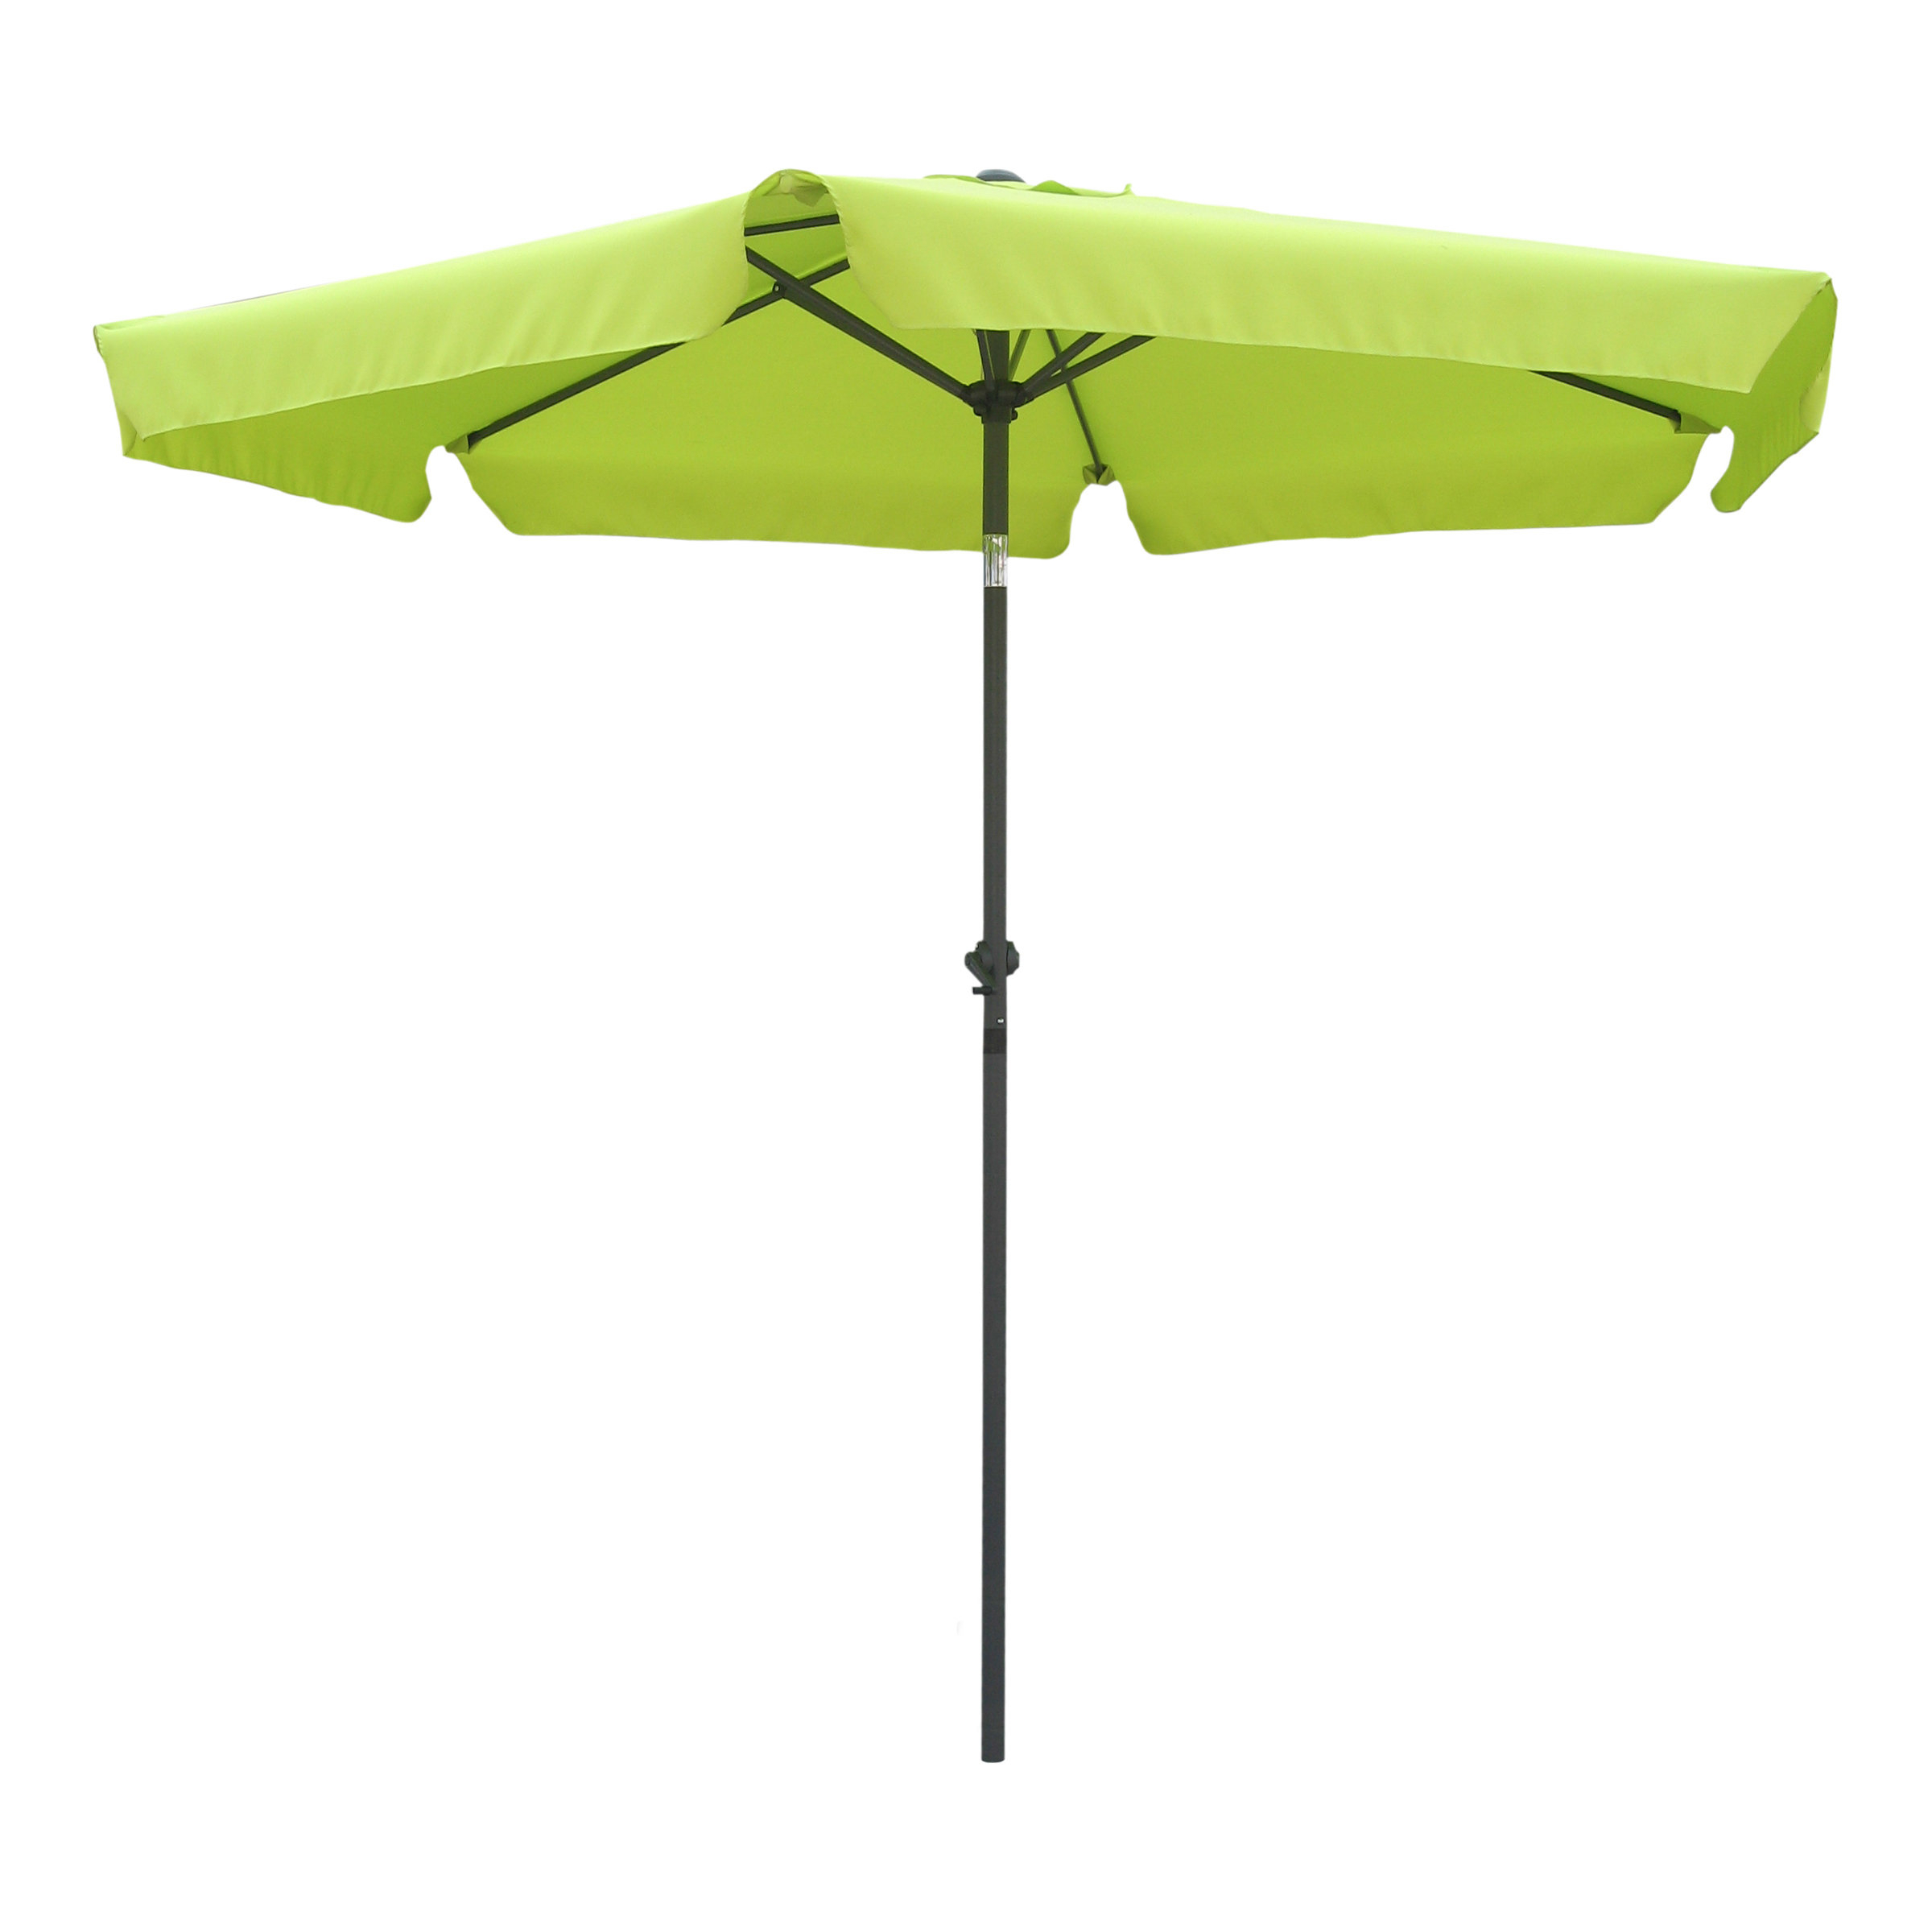 Hyperion 8' Beach Umbrella With Regard To Well Liked Hyperion Market Umbrellas (View 3 of 20)